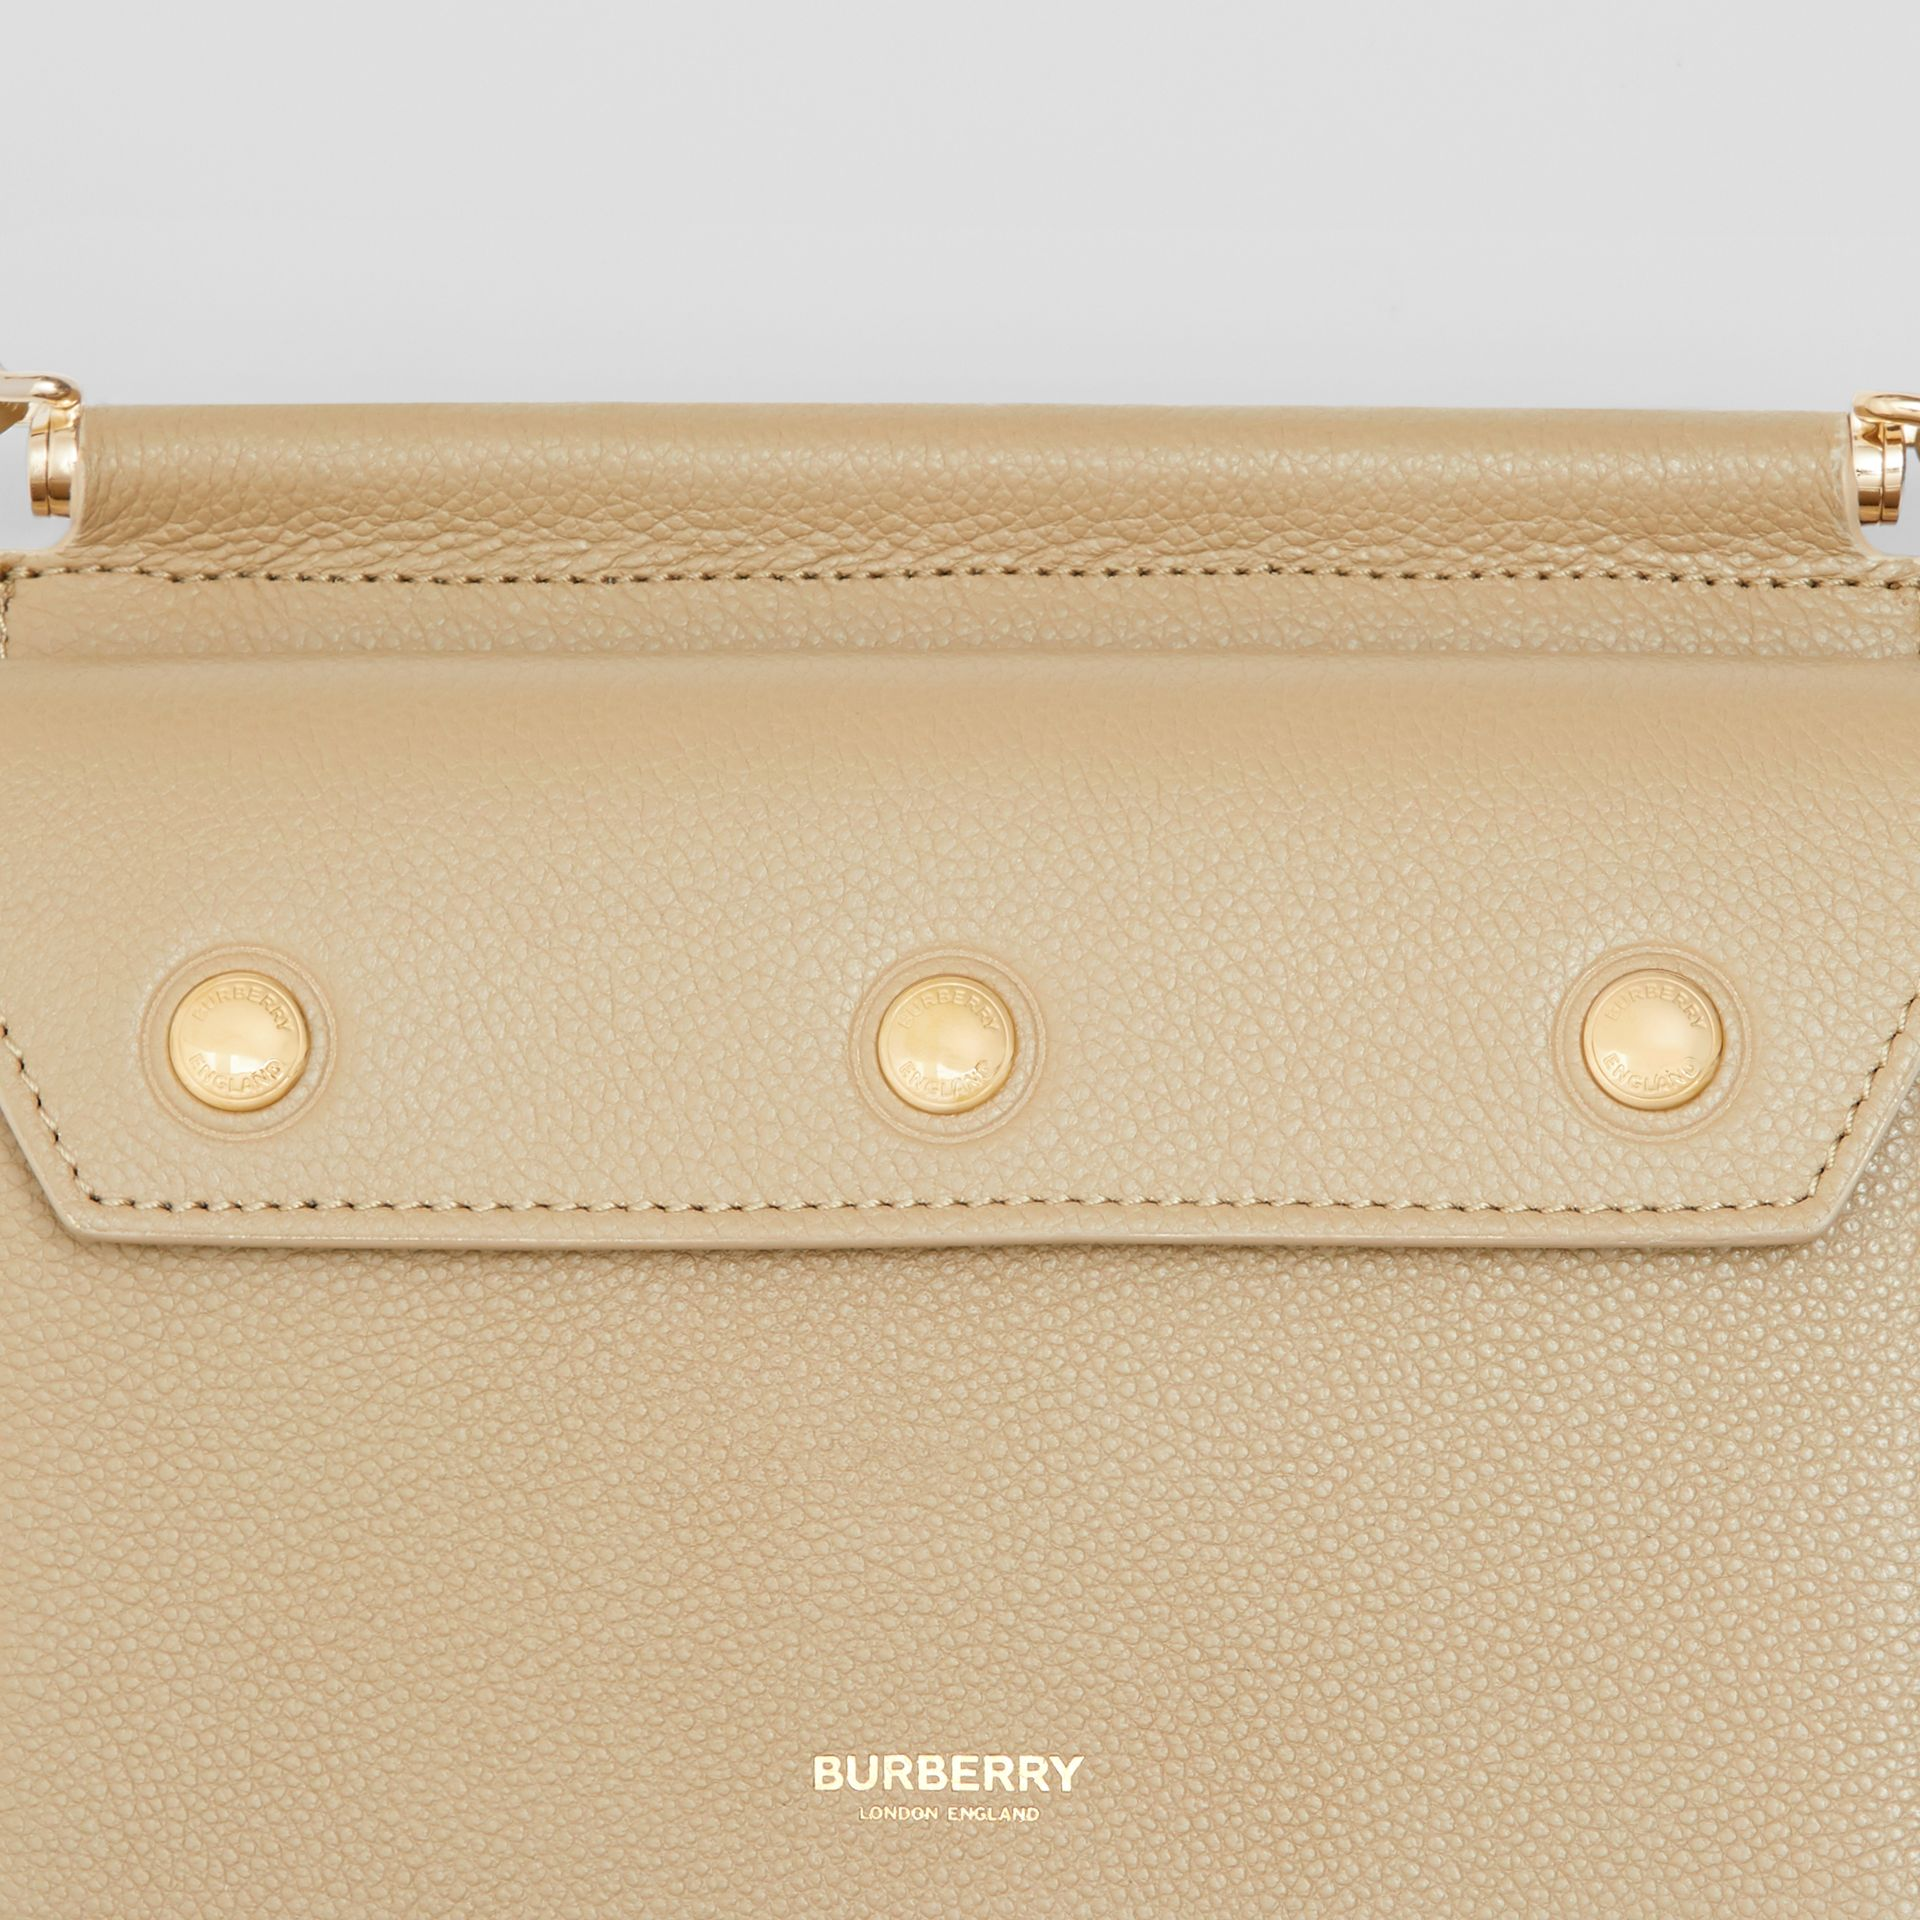 Mini Leather Title Bag with Pocket Detail in Honey - Women | Burberry United Kingdom - gallery image 1